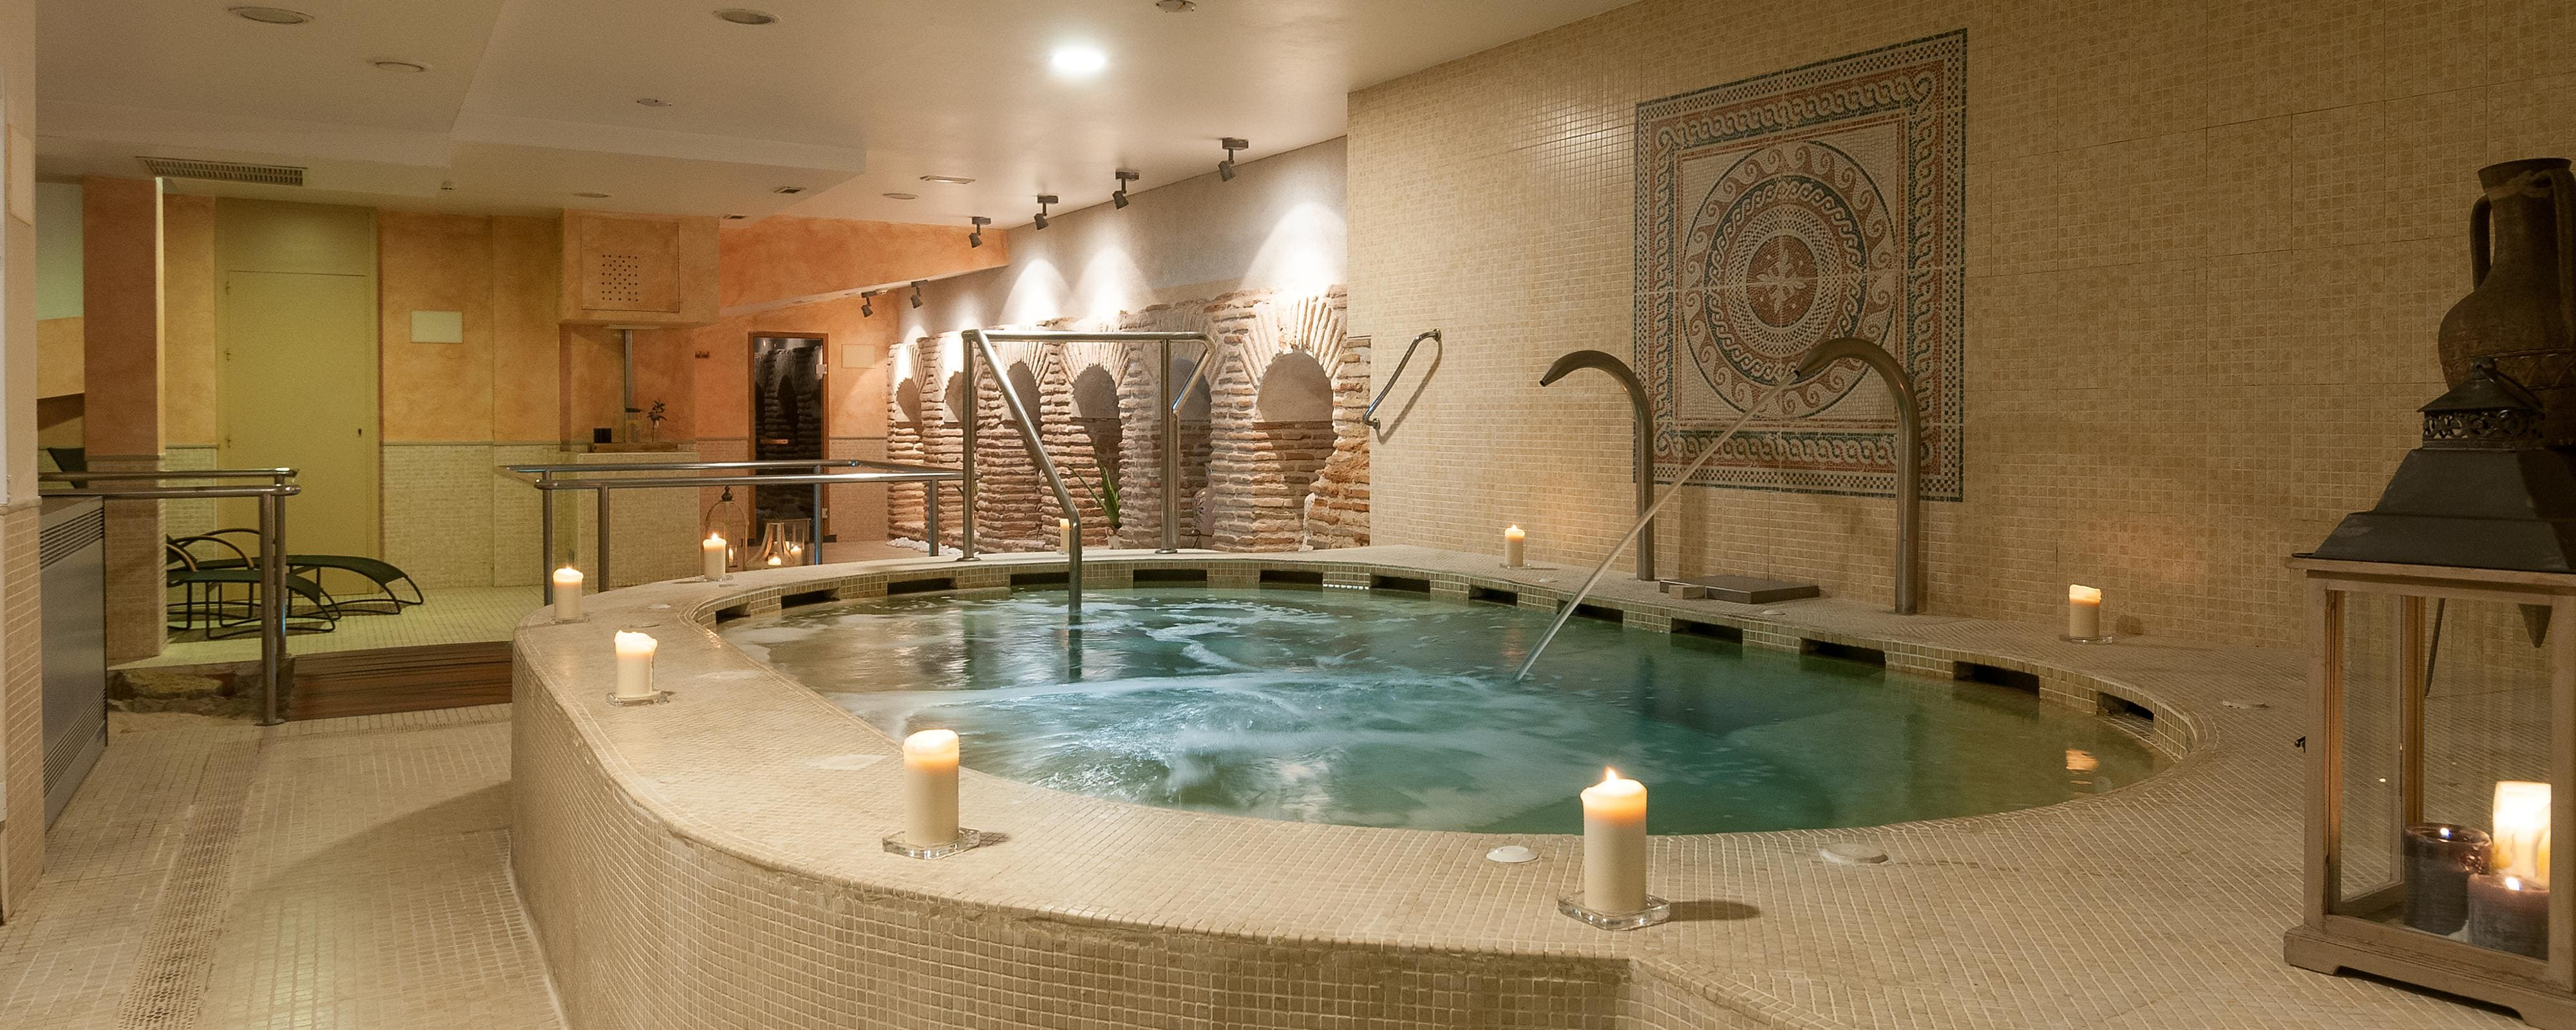 Jacuzzi Pool De Luxurious Hotel Spa In Toledo Spain Eugenia De Montijo